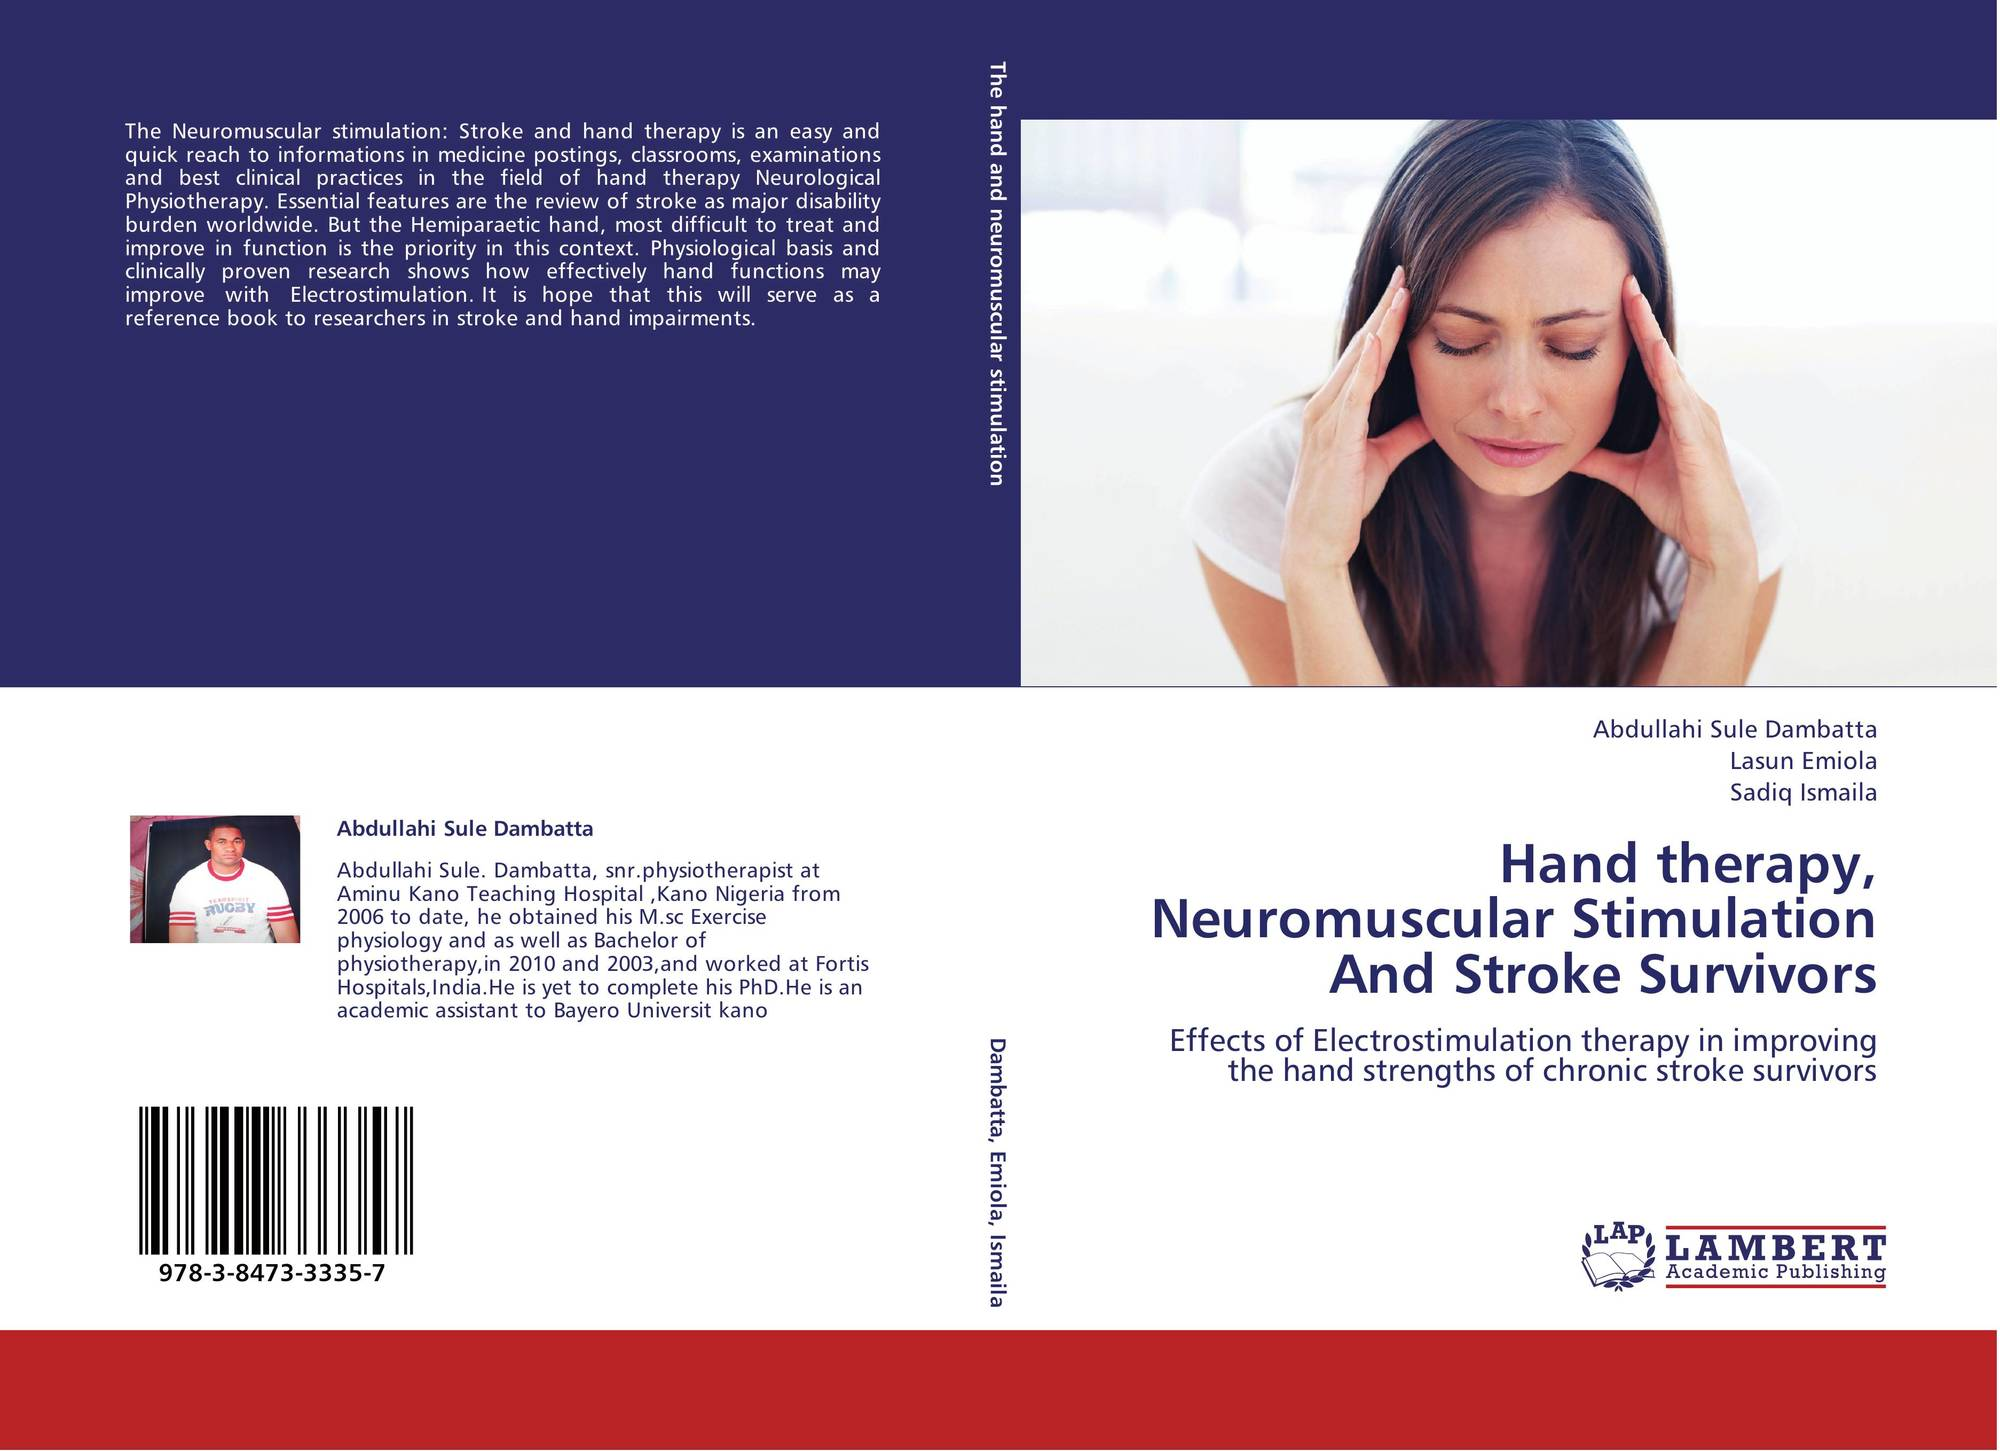 Hand therapy, Neuromuscular Stimulation And Stroke Survivors, 978-3